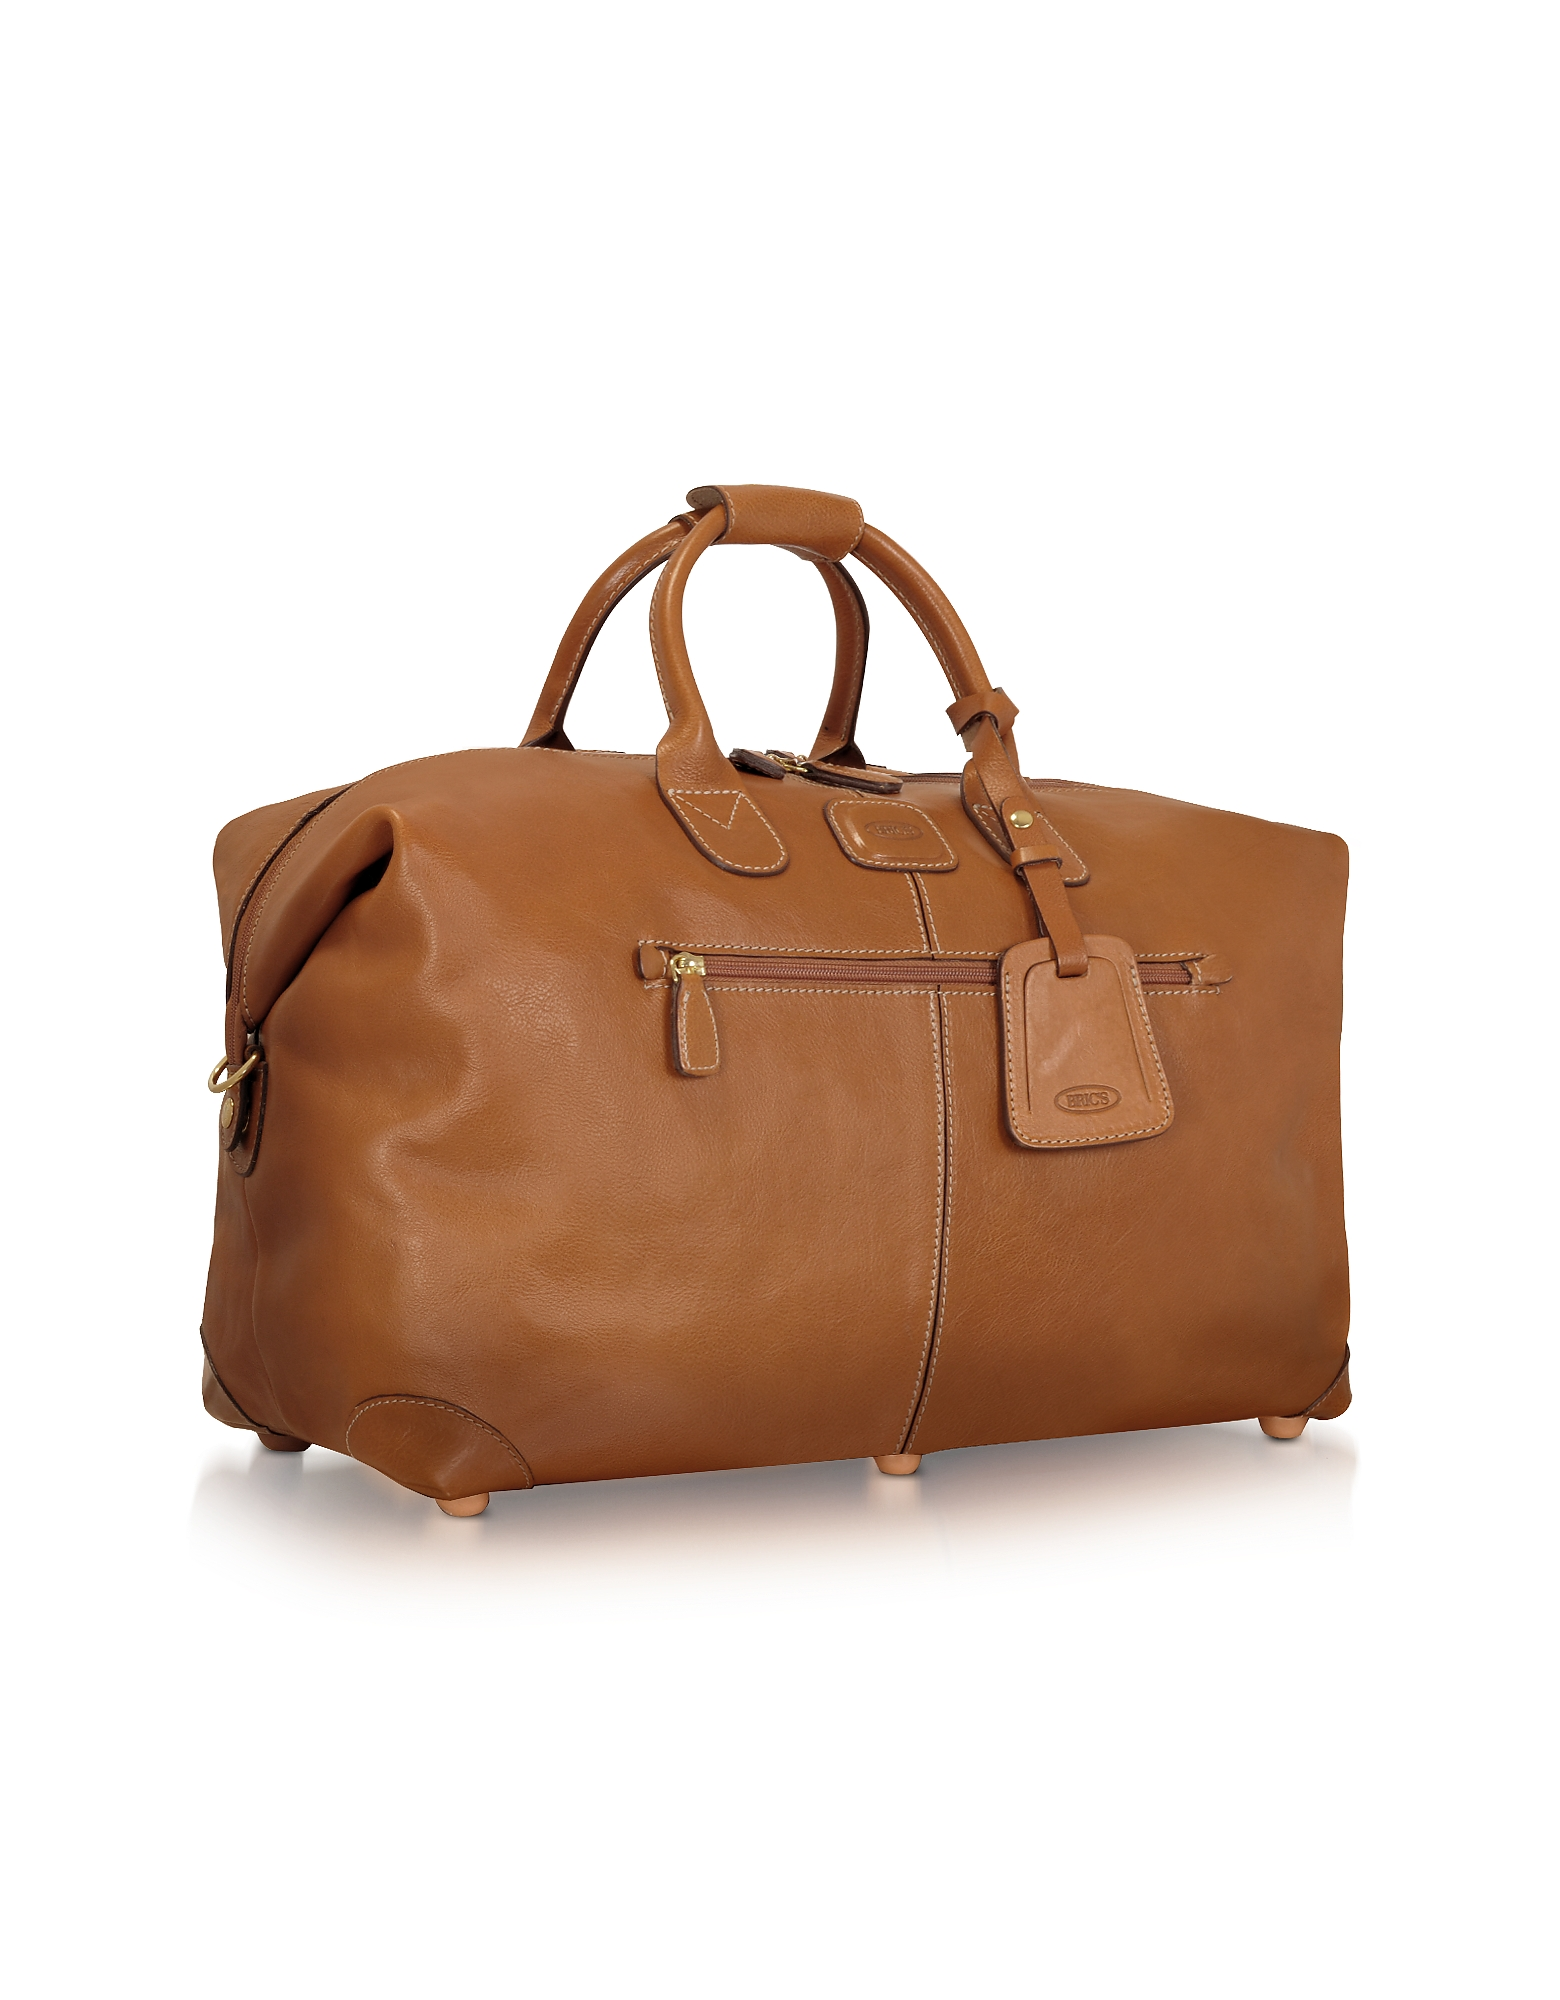 Bric's Travel Bags, Life Pelle - Medium Leather Travel Bag